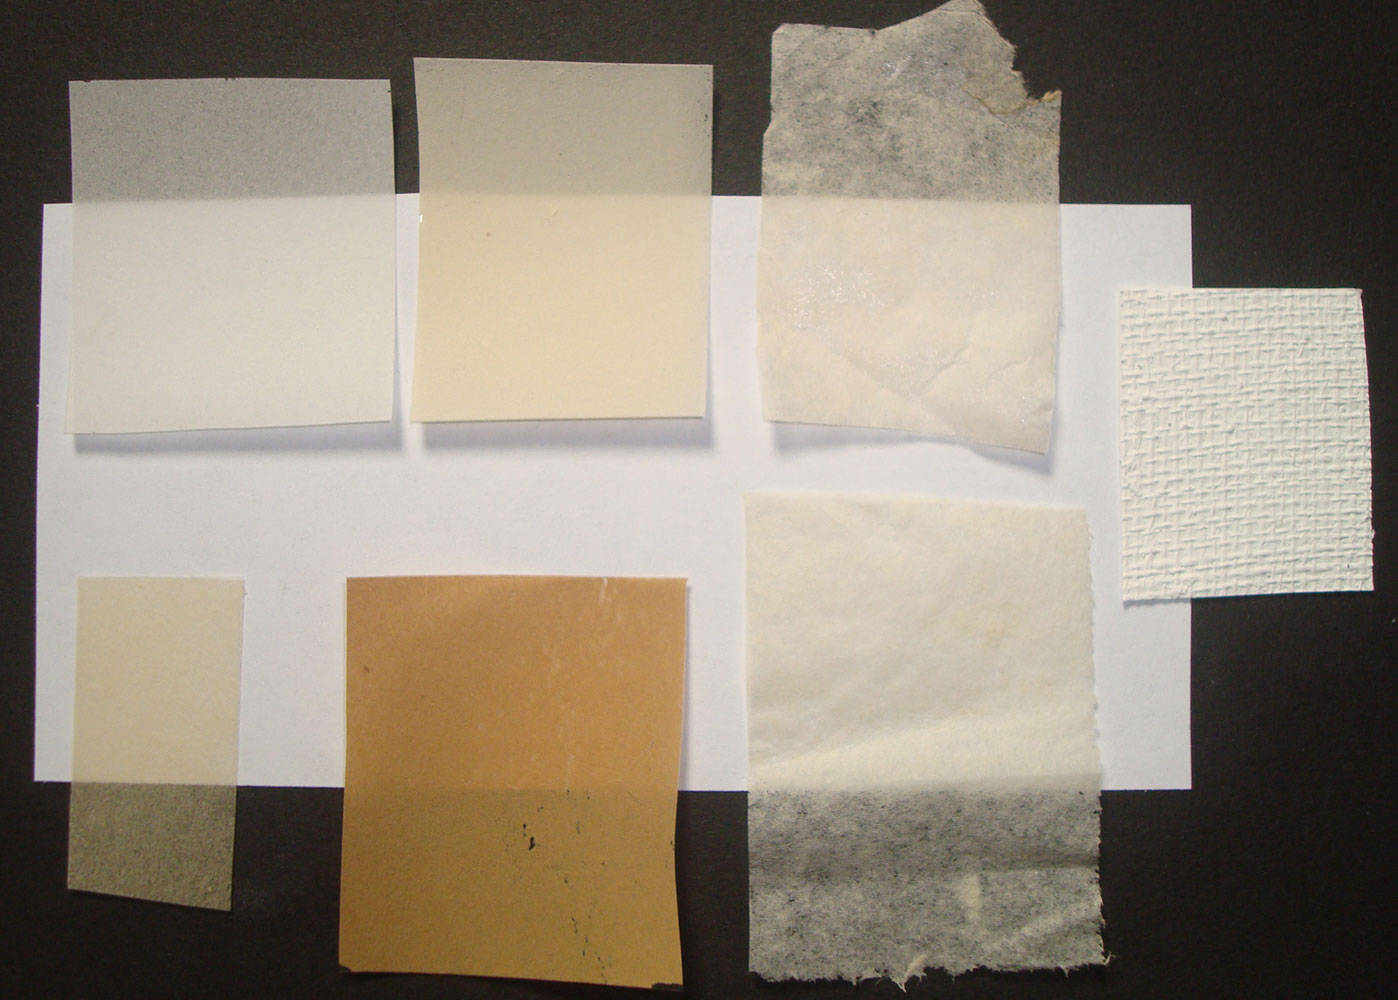 Samples of hand made papers with Solkafloc (the four to the left), with whatman fibers (to the right, and a sample of a texturized filling material with the addition of paper as a filler.